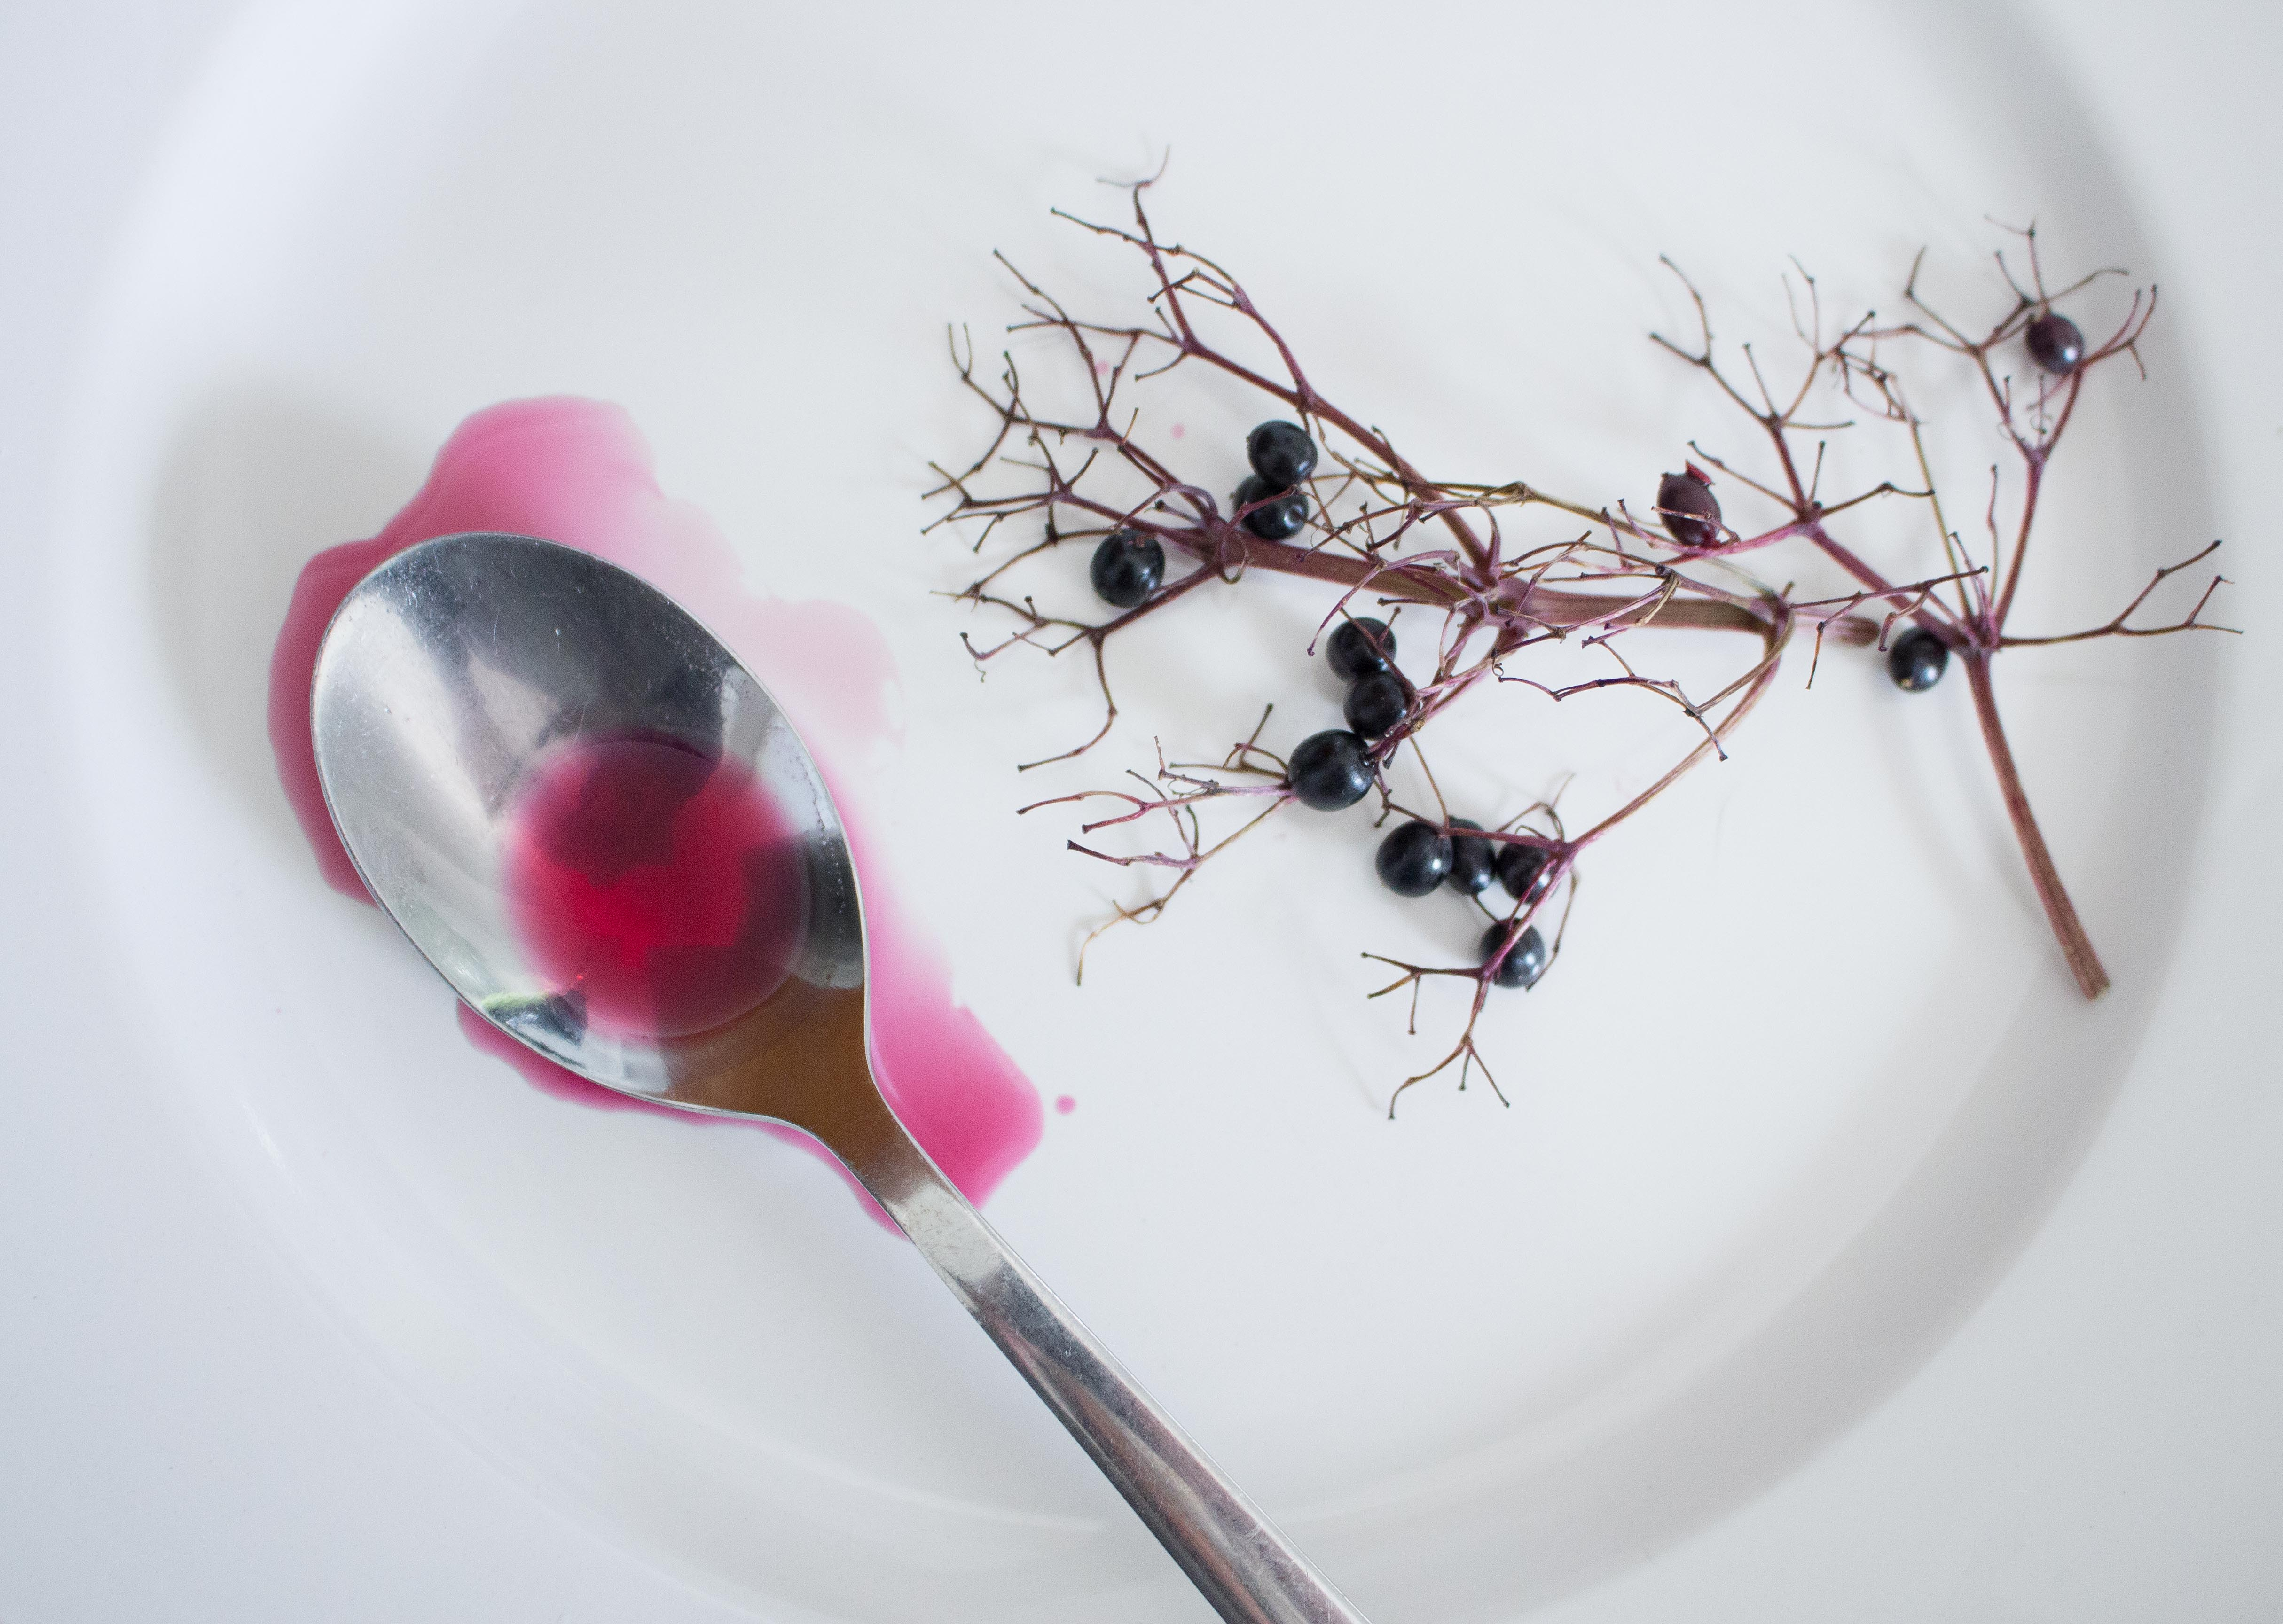 How To Make Elderberry Syrup With Fresh Or Dried Berries